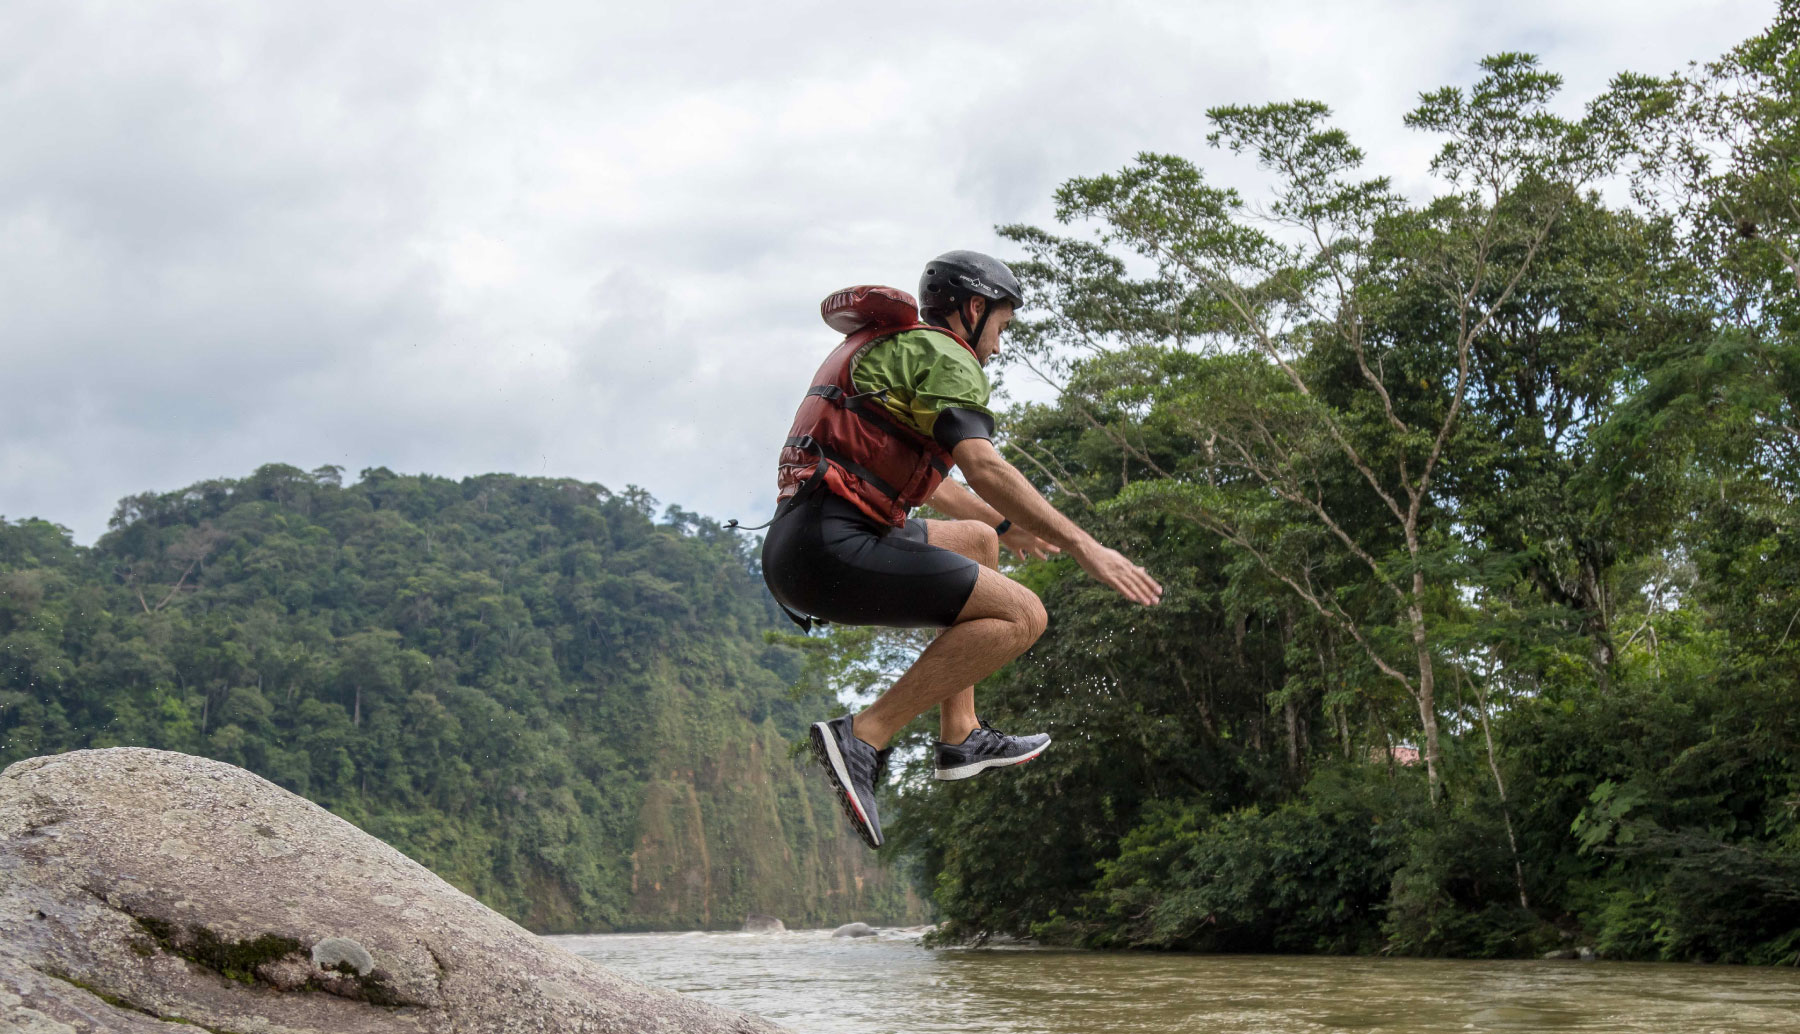 Jatun Yacu Rafting Trip. One of our clients jumping from one of many rocks at this amazing river